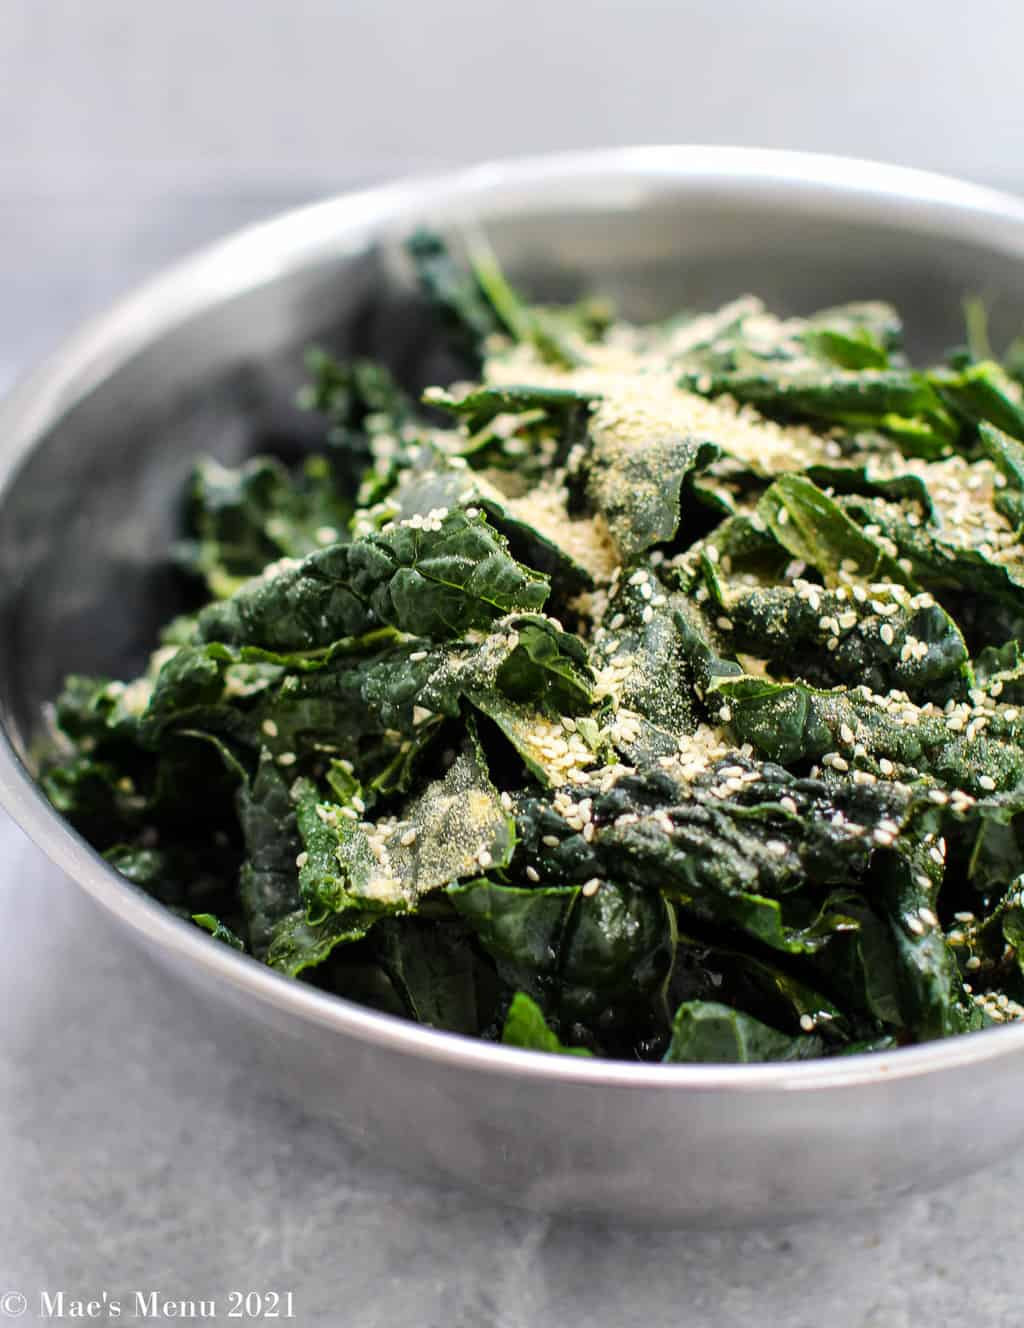 A side shot of kale leaves in a mixing bowl before frying